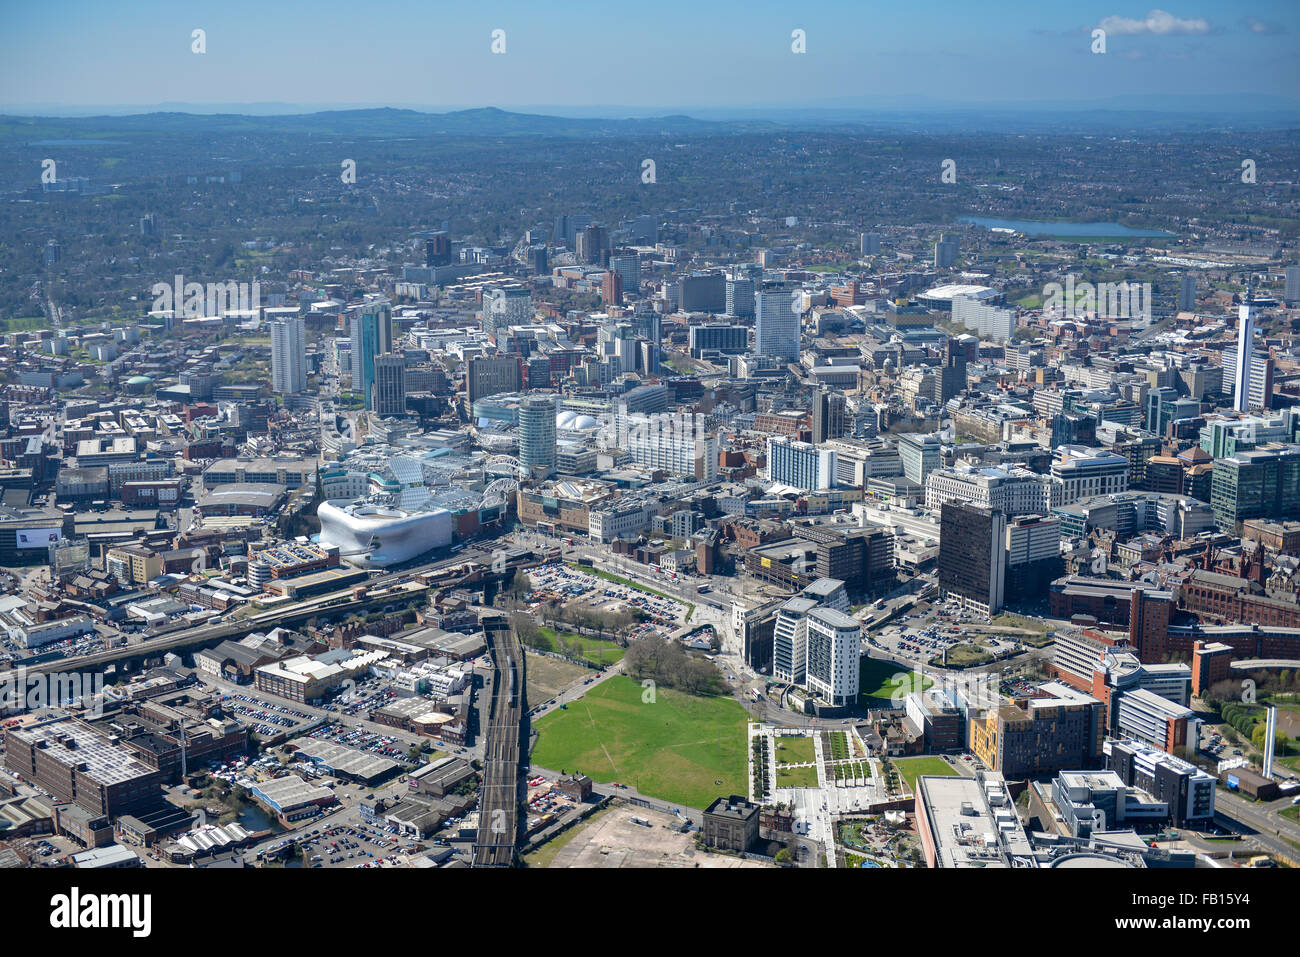 An aerial view the City Centre of Birmingham in the West Midlands, UK - Stock Image